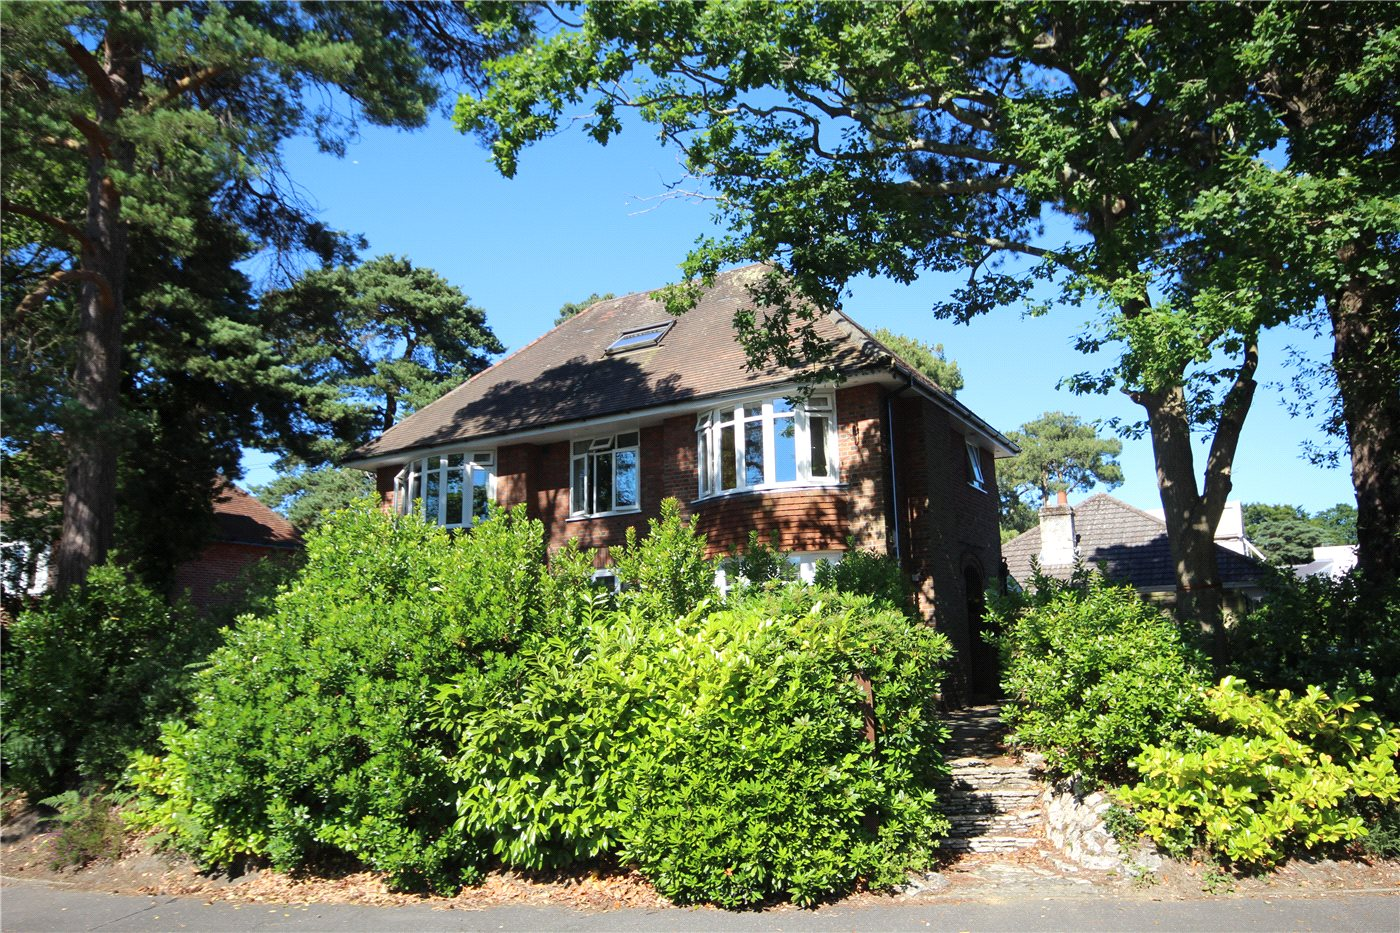 3 Bedrooms Flat for sale in Alton Road, Lower Parkstone, Poole, Dorset, BH14